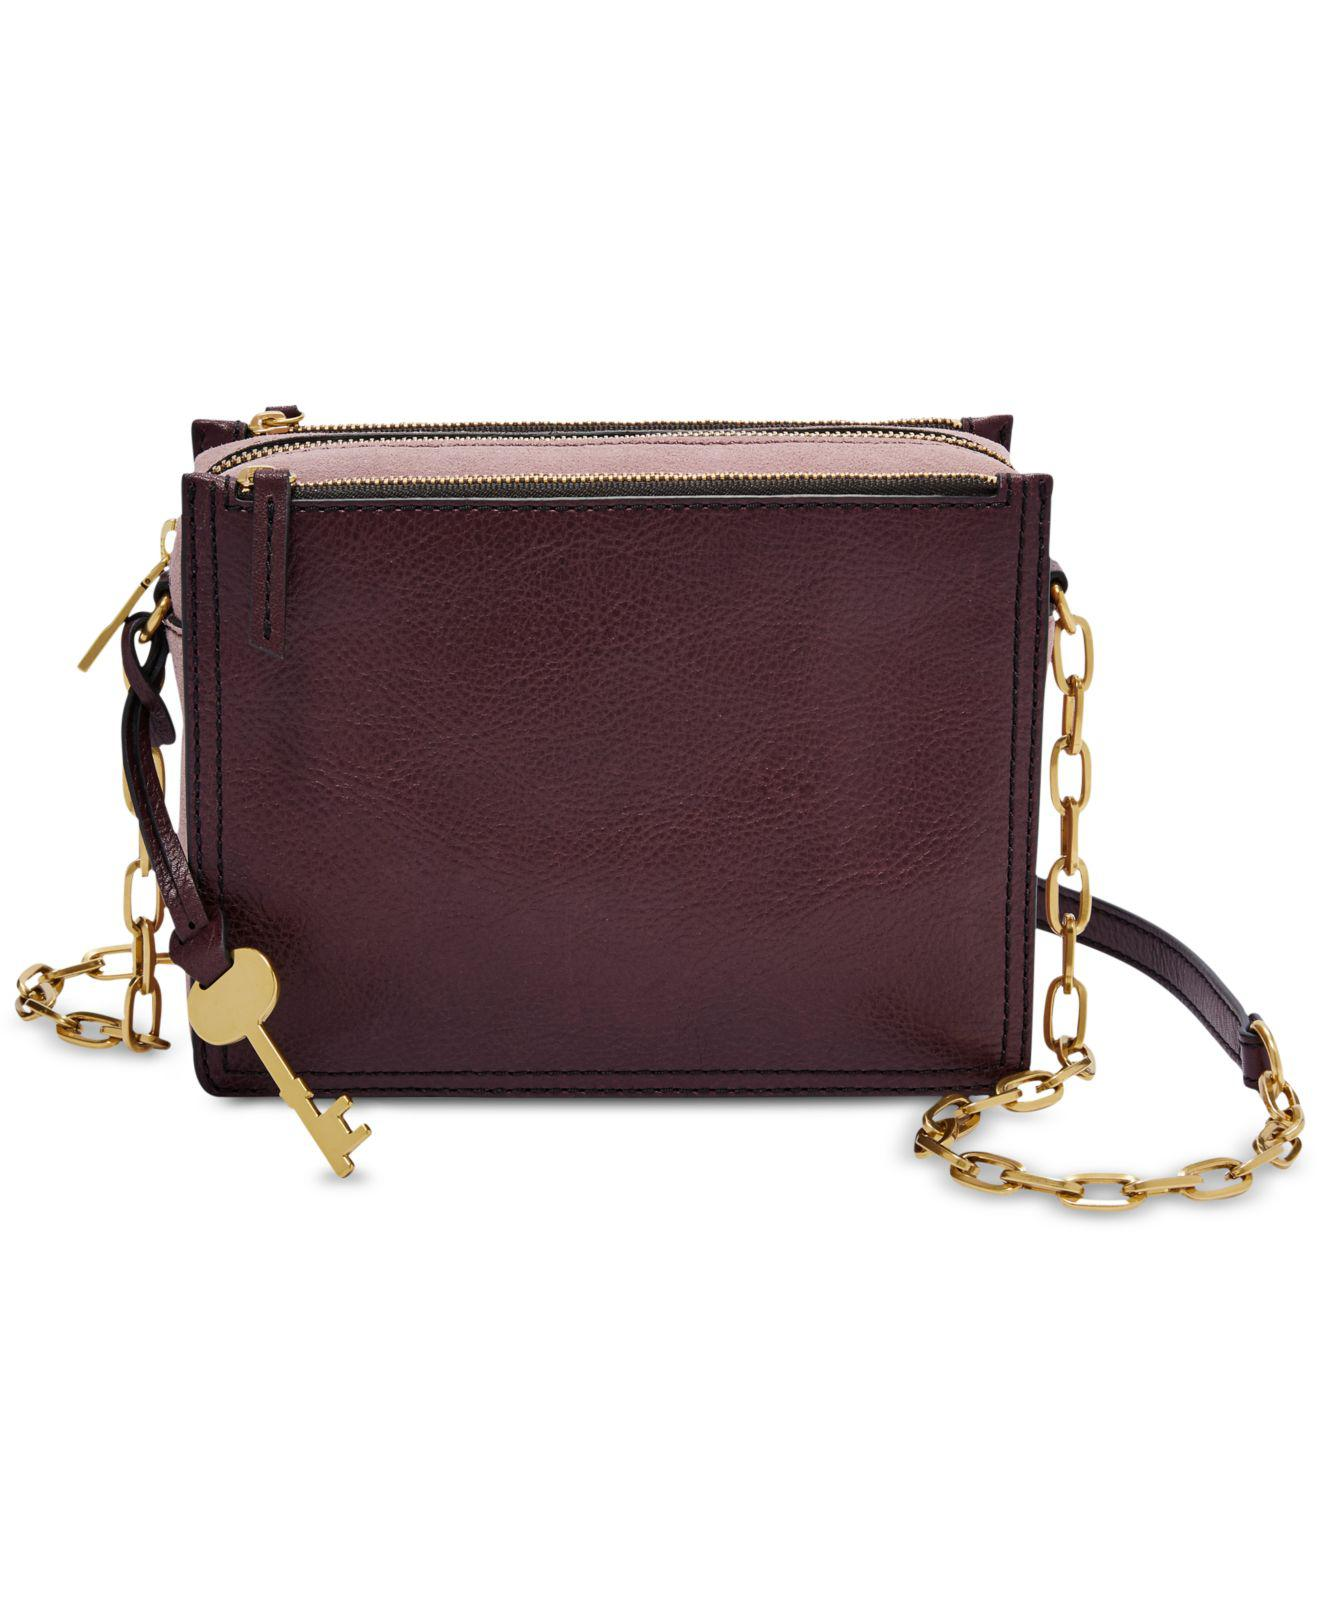 10b32fd03c4b Lyst - Fossil Campbell Leather Chain Crossbody - Save 25%